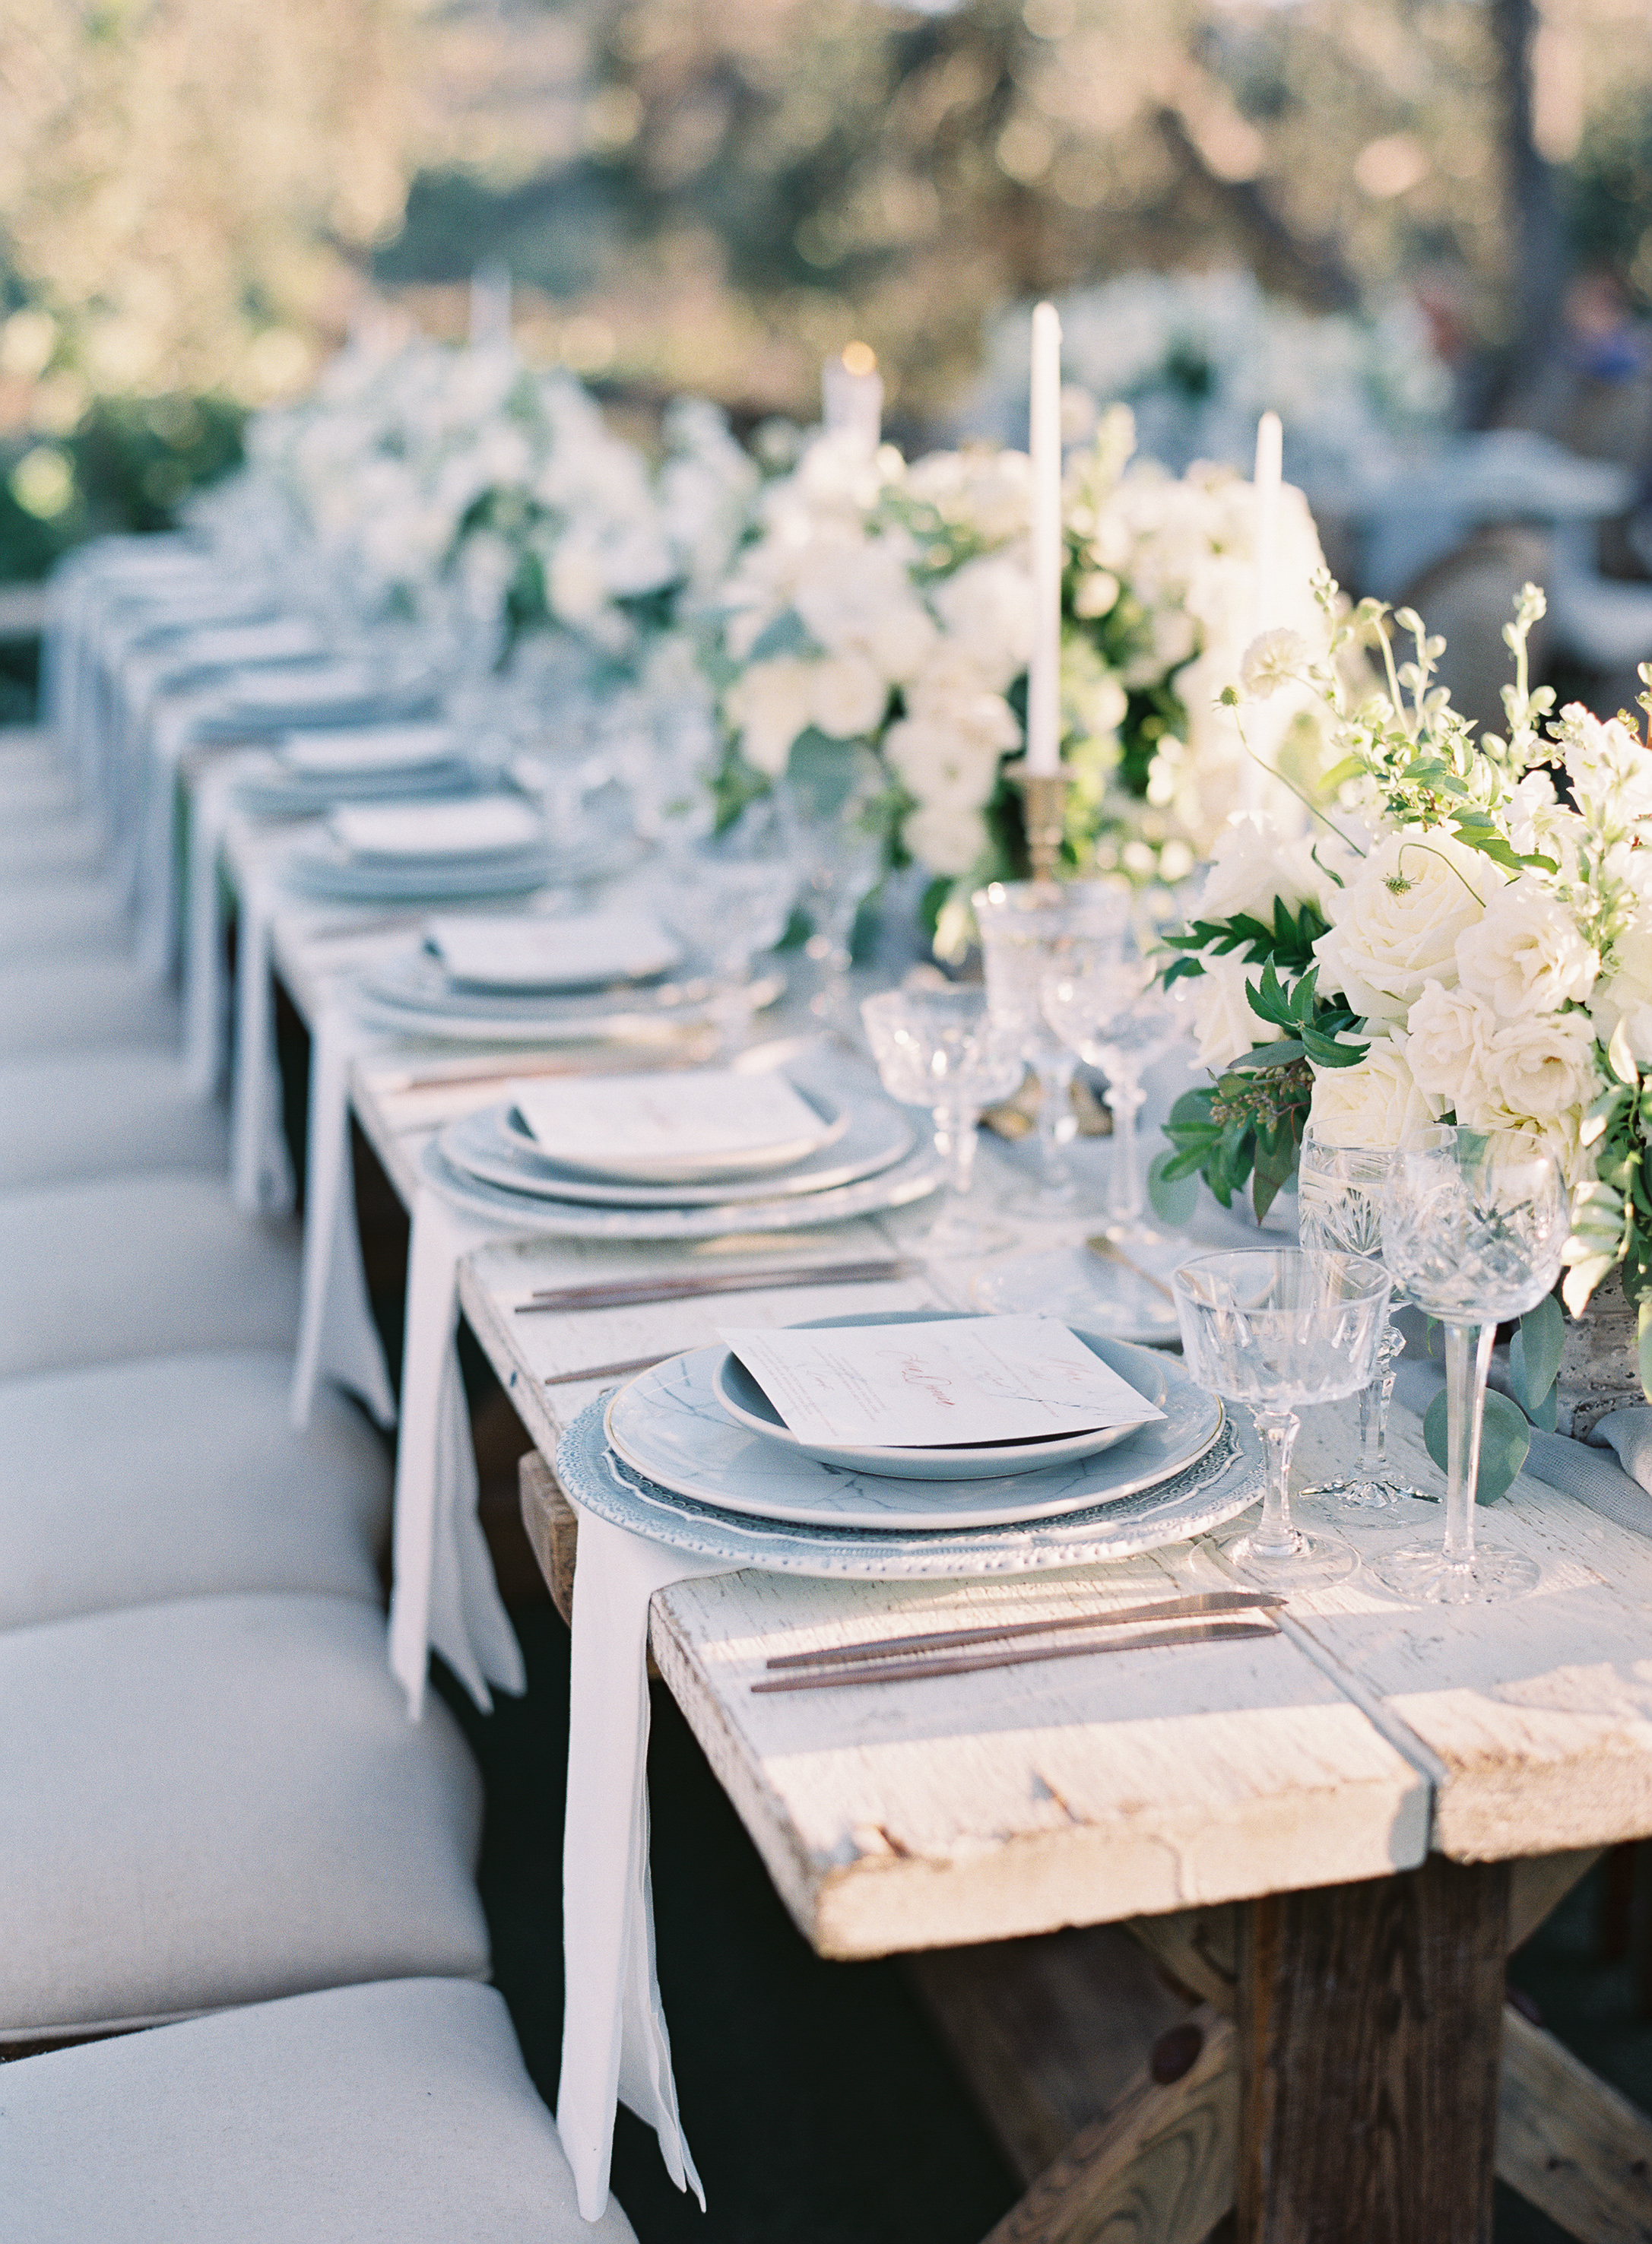 Side view of farm/family style long table setting. White rose and mixed white flower center pieces. Rustic/modern